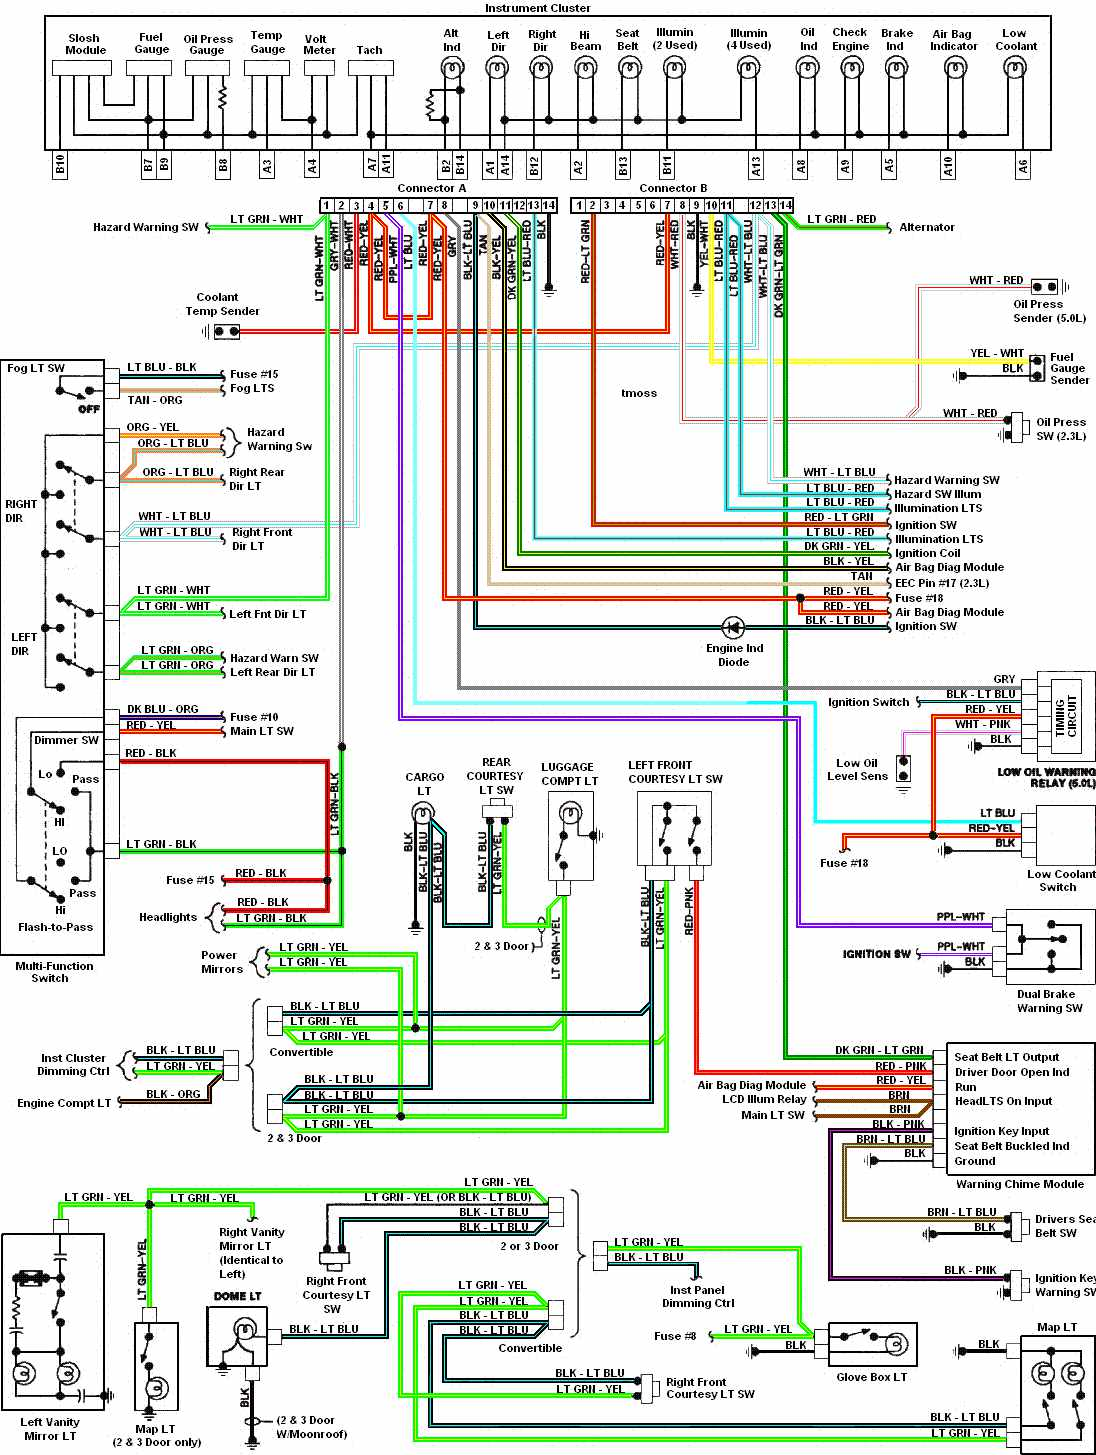 Ford Premium Sound Wiring Diagram - Roslonek.net